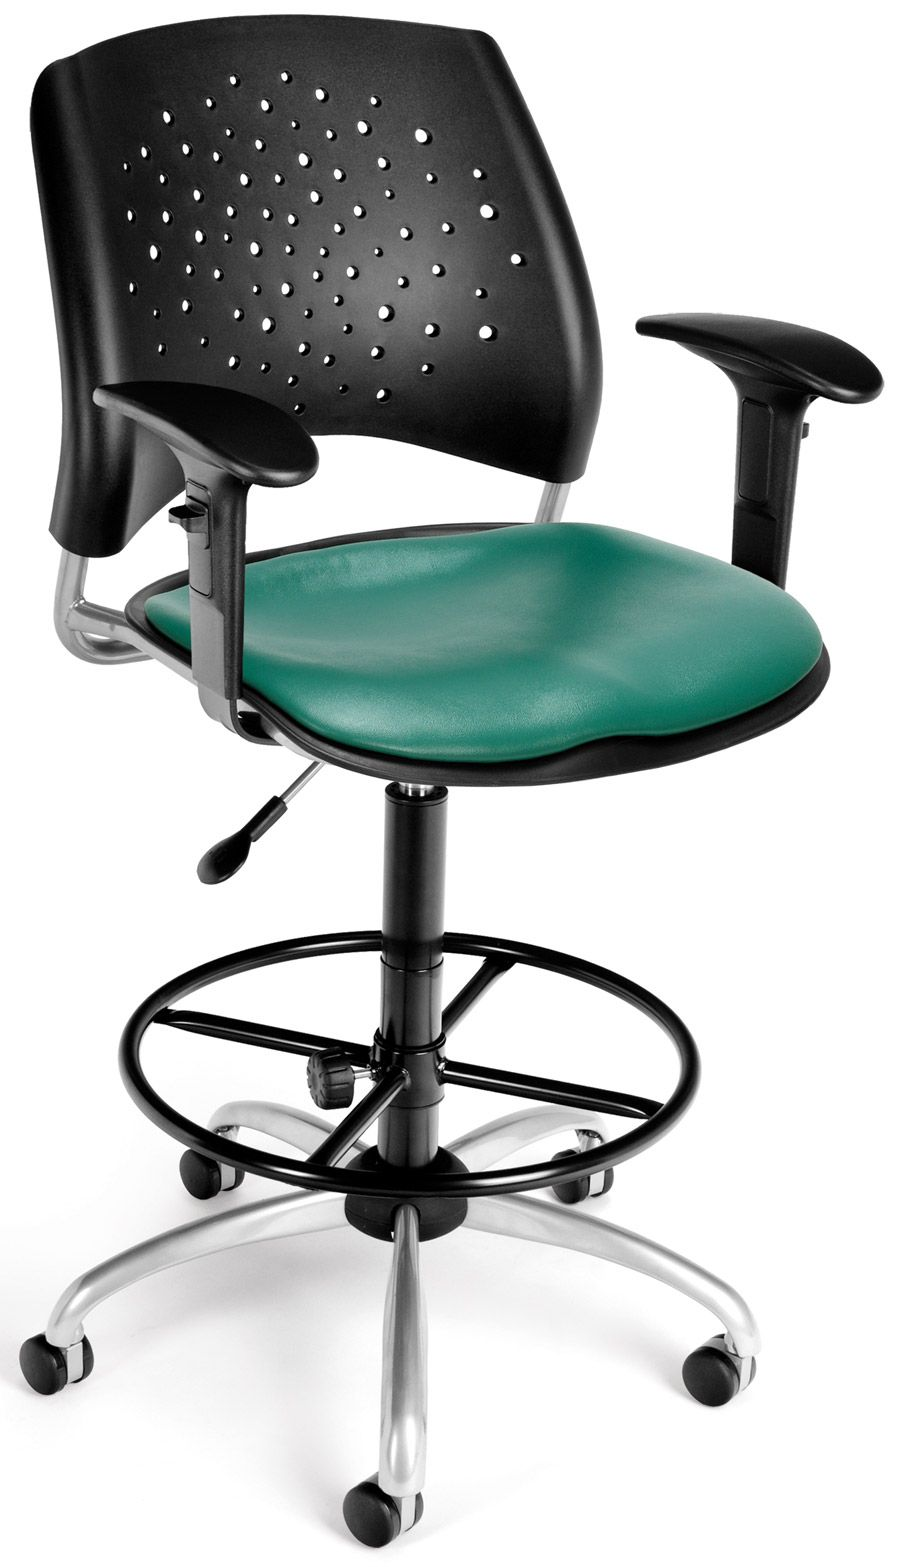 Vinyl Seat Star Swivel Drafting Chair with Arms and Drafting Kit Teal$273.99  sc 1 st  Pinterest & Vinyl Seat Star Swivel Drafting Chair with Arms and Drafting Kit ...